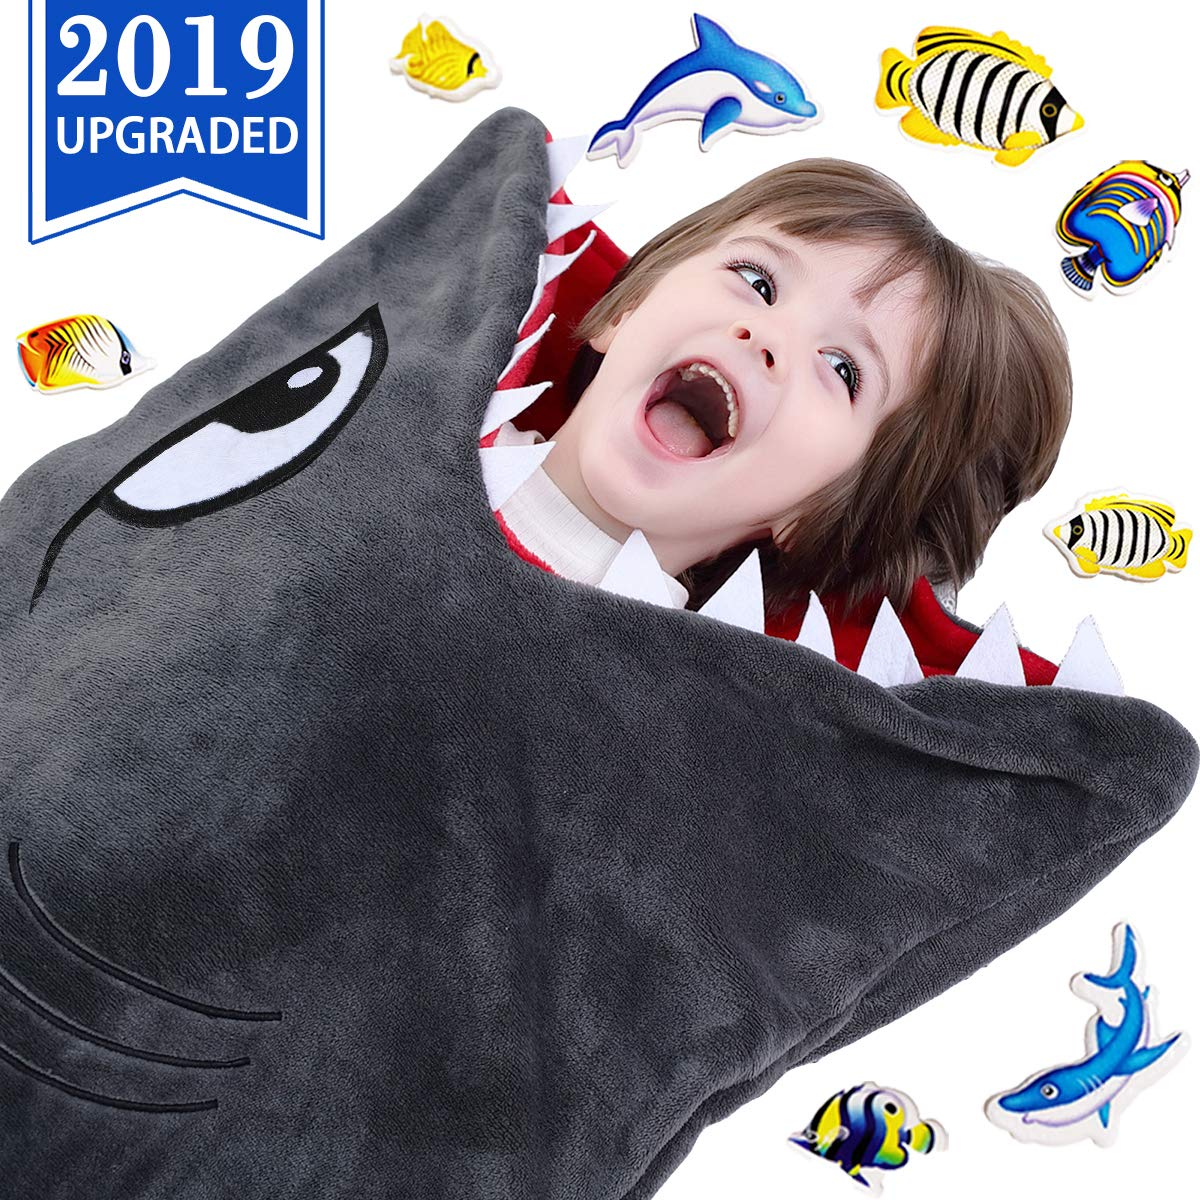 CozyBomB Shark Tails Animal Blanket for Kids - Cozy Smooth One Piece Design - Durable Seamless Snuggle Plush Throw Enlarged Size Gray Sleeping Bag with Blankie Fun Fin - Boys and Girls by CozyBomB